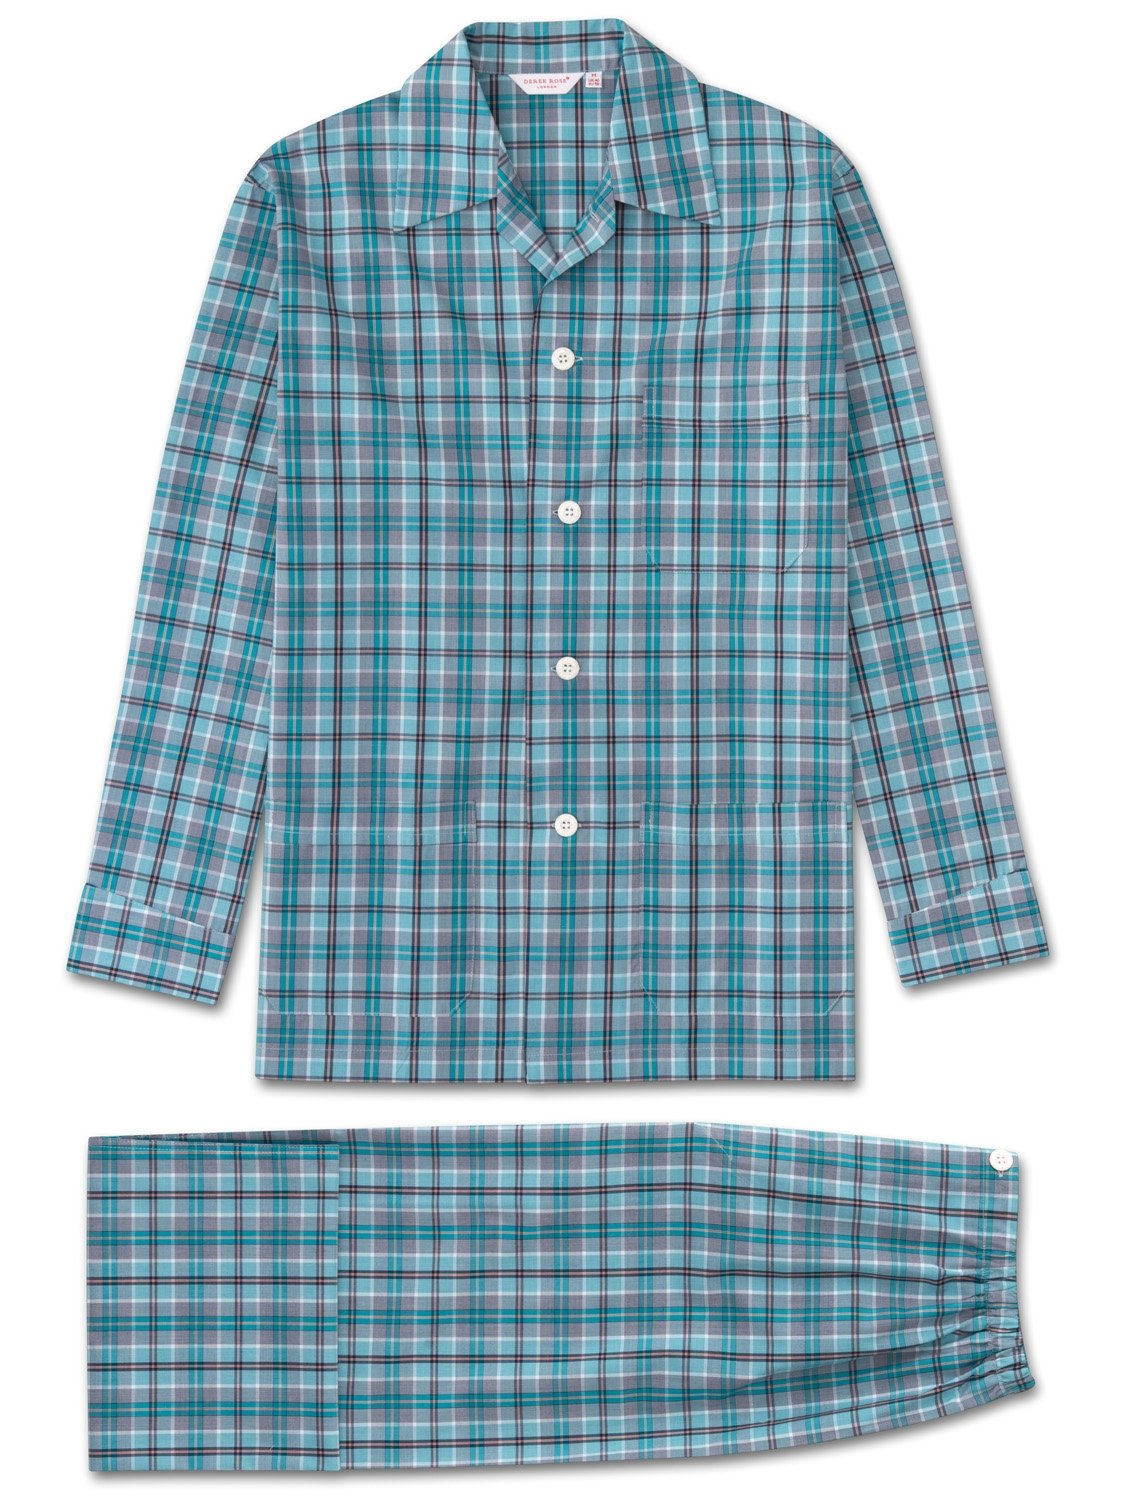 Men's Classic Fit Pyjamas Barker 18 Cotton Check Teal